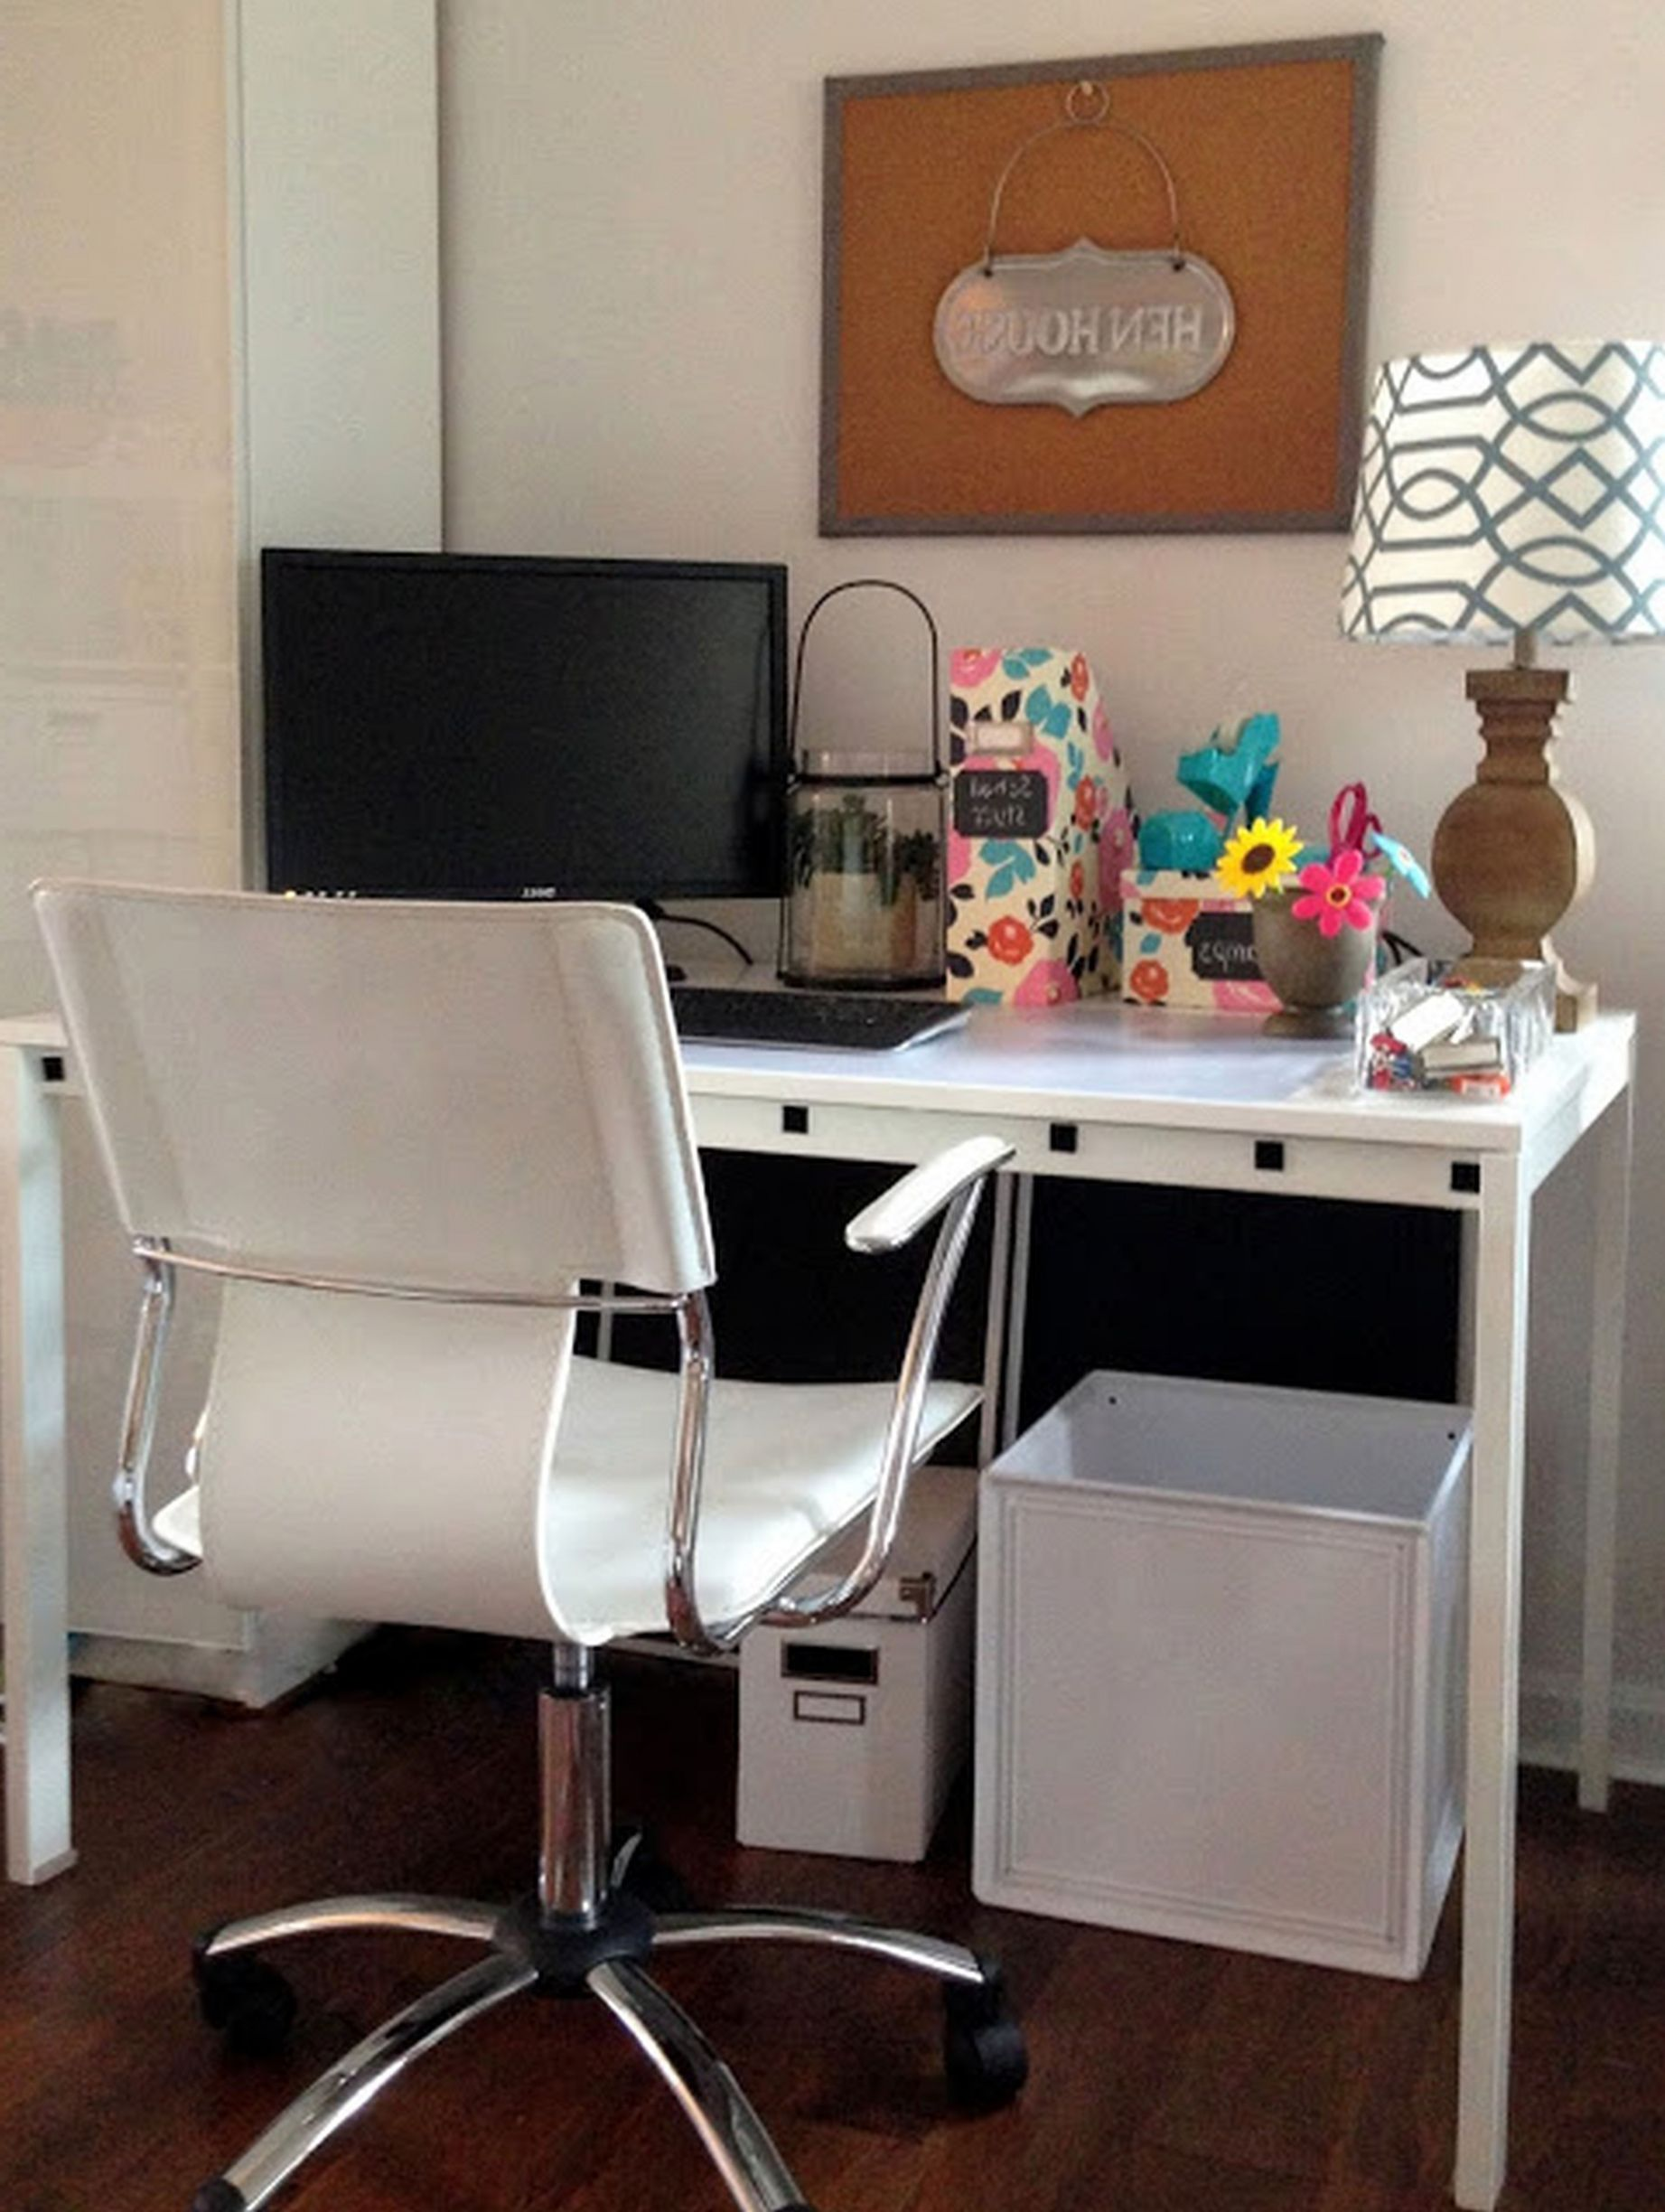 Beau Inexpensive Small Office Desk   Design Desk Ideas Check More At Http://www